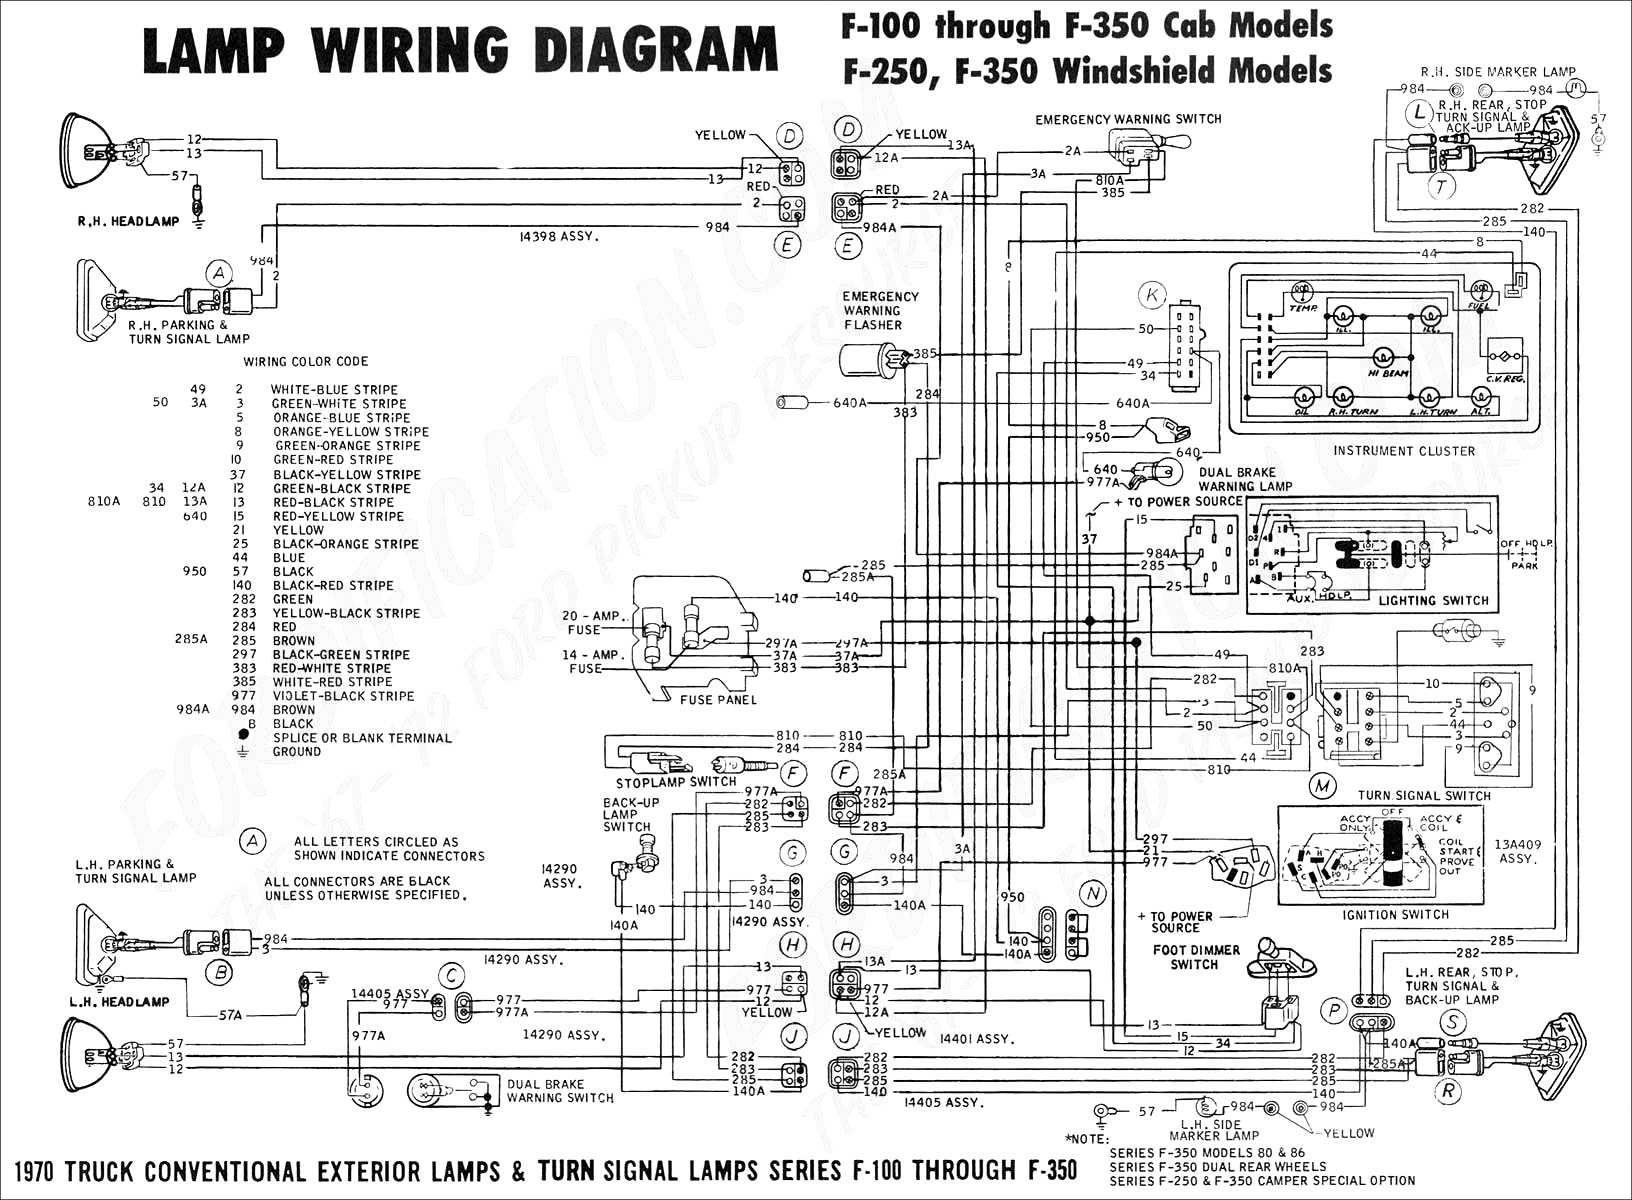 hbl2721 wiring diagram Download-2001 ford mustang wiring diagram mustang wiring diagram fordr stereo explorer sport trac car radio of 2001 ford mustang wiring diagram 5-s